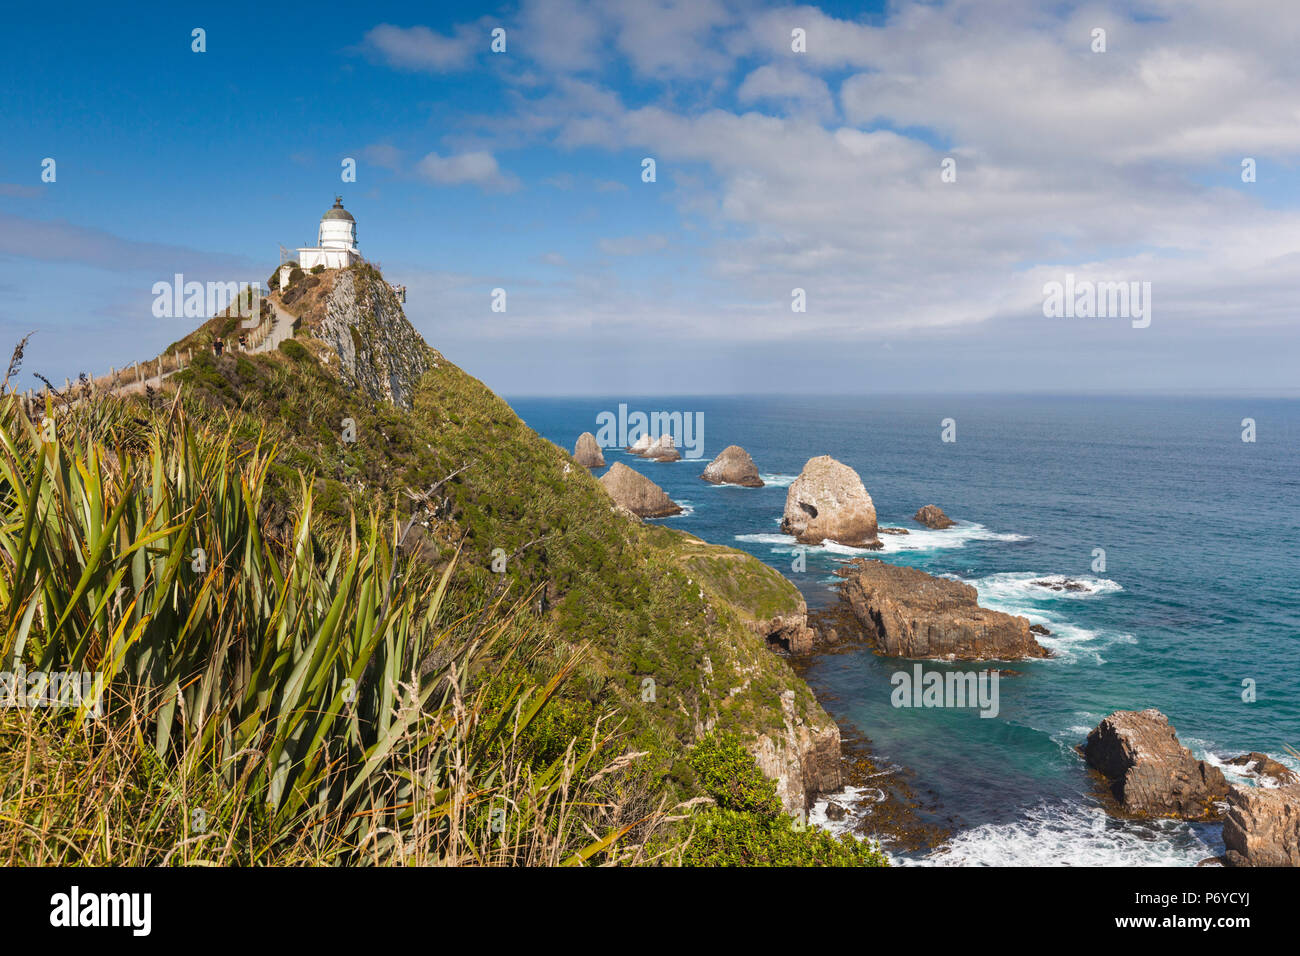 New Zealand, South Island, Southland, The Catlins, Nugget Point, Nuggett Point LIghthouse, elevated view - Stock Image